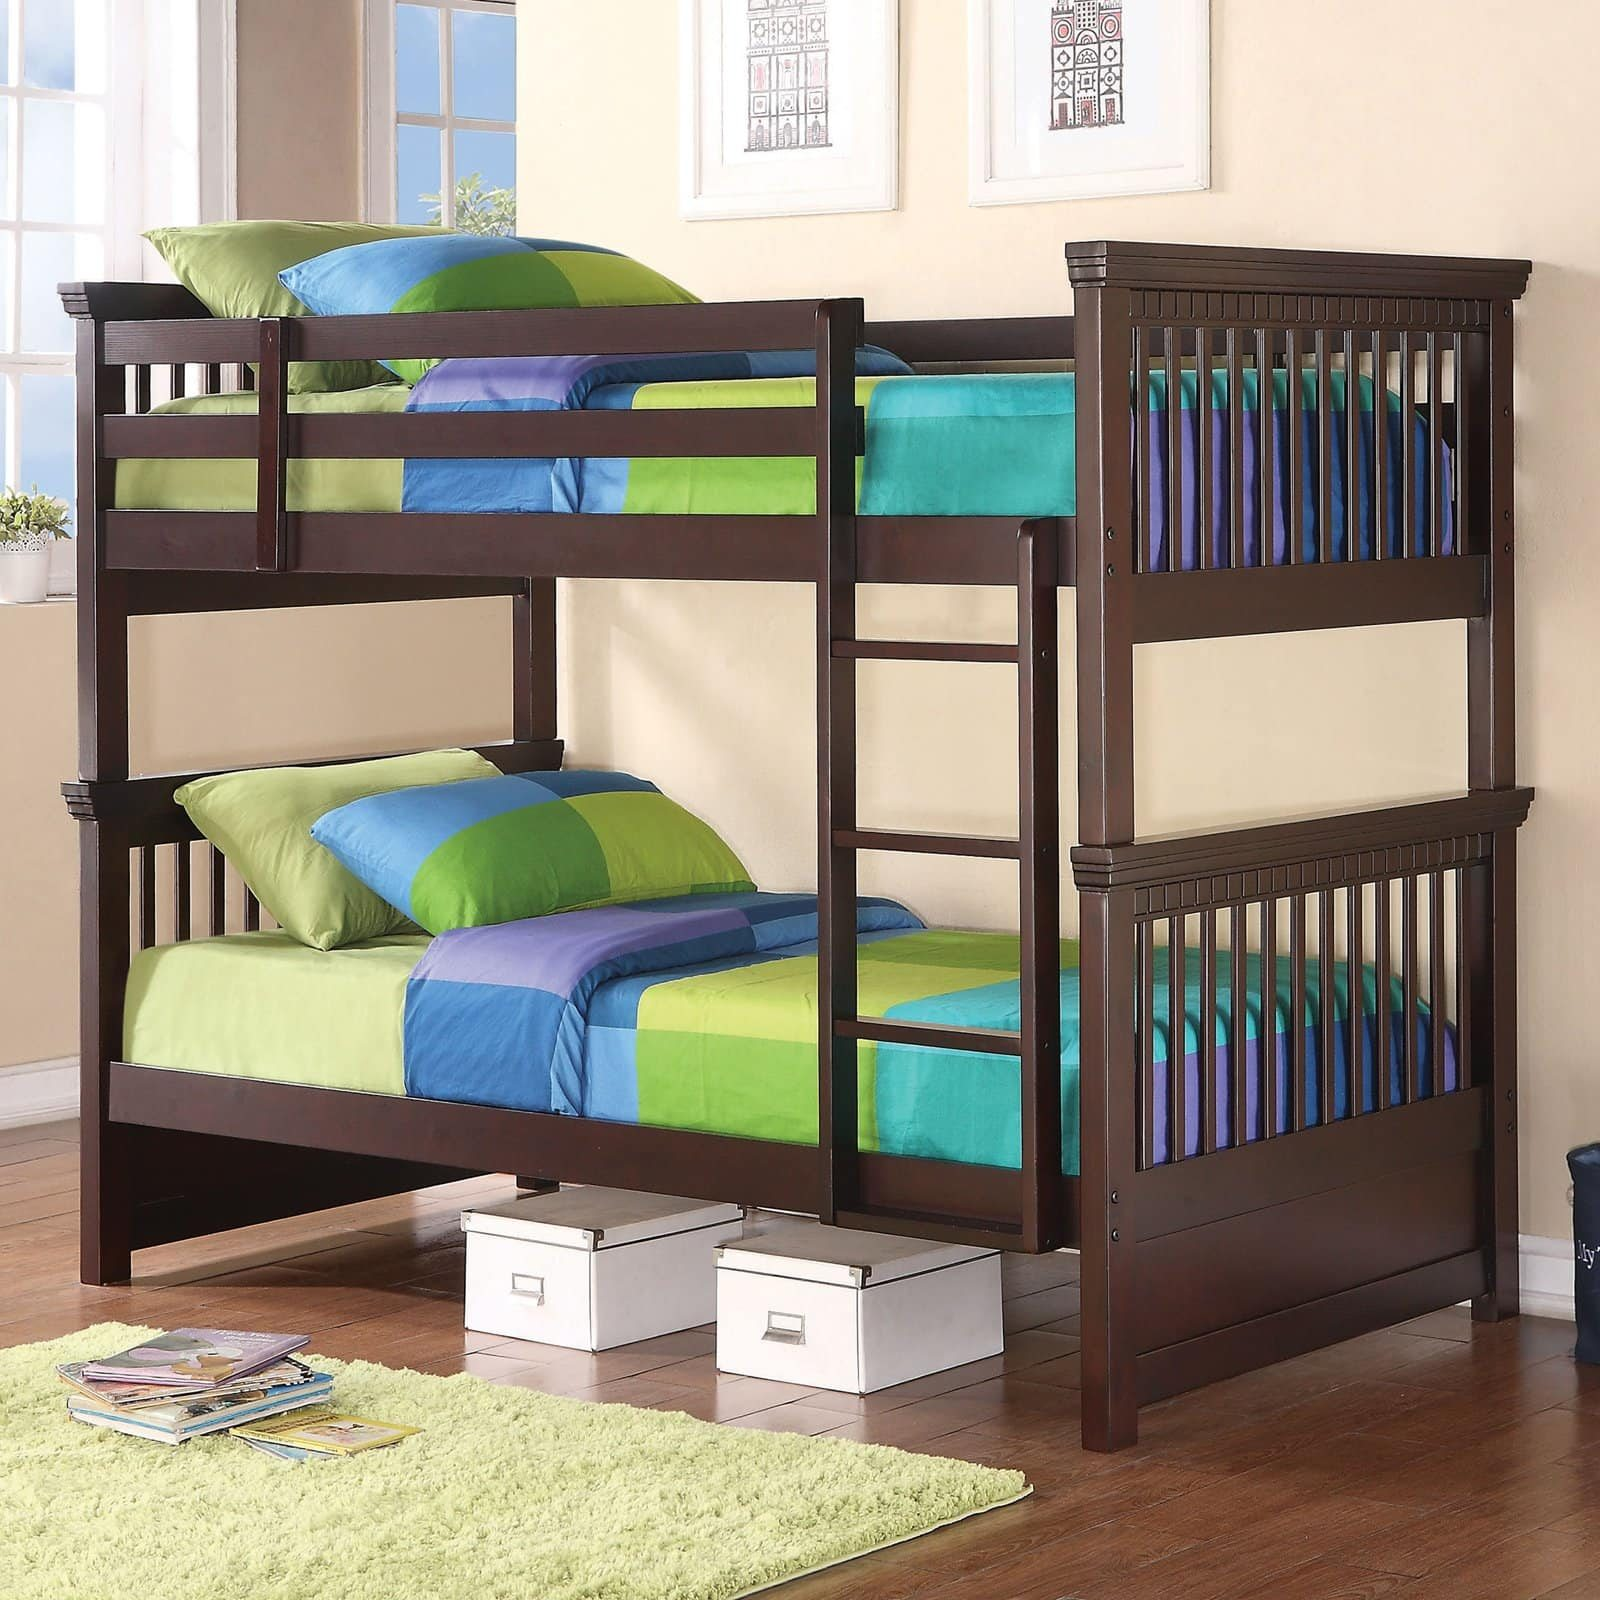 Oliver Twin Bunk Bed with Spindle Headboard and Footboard - Cappuccino